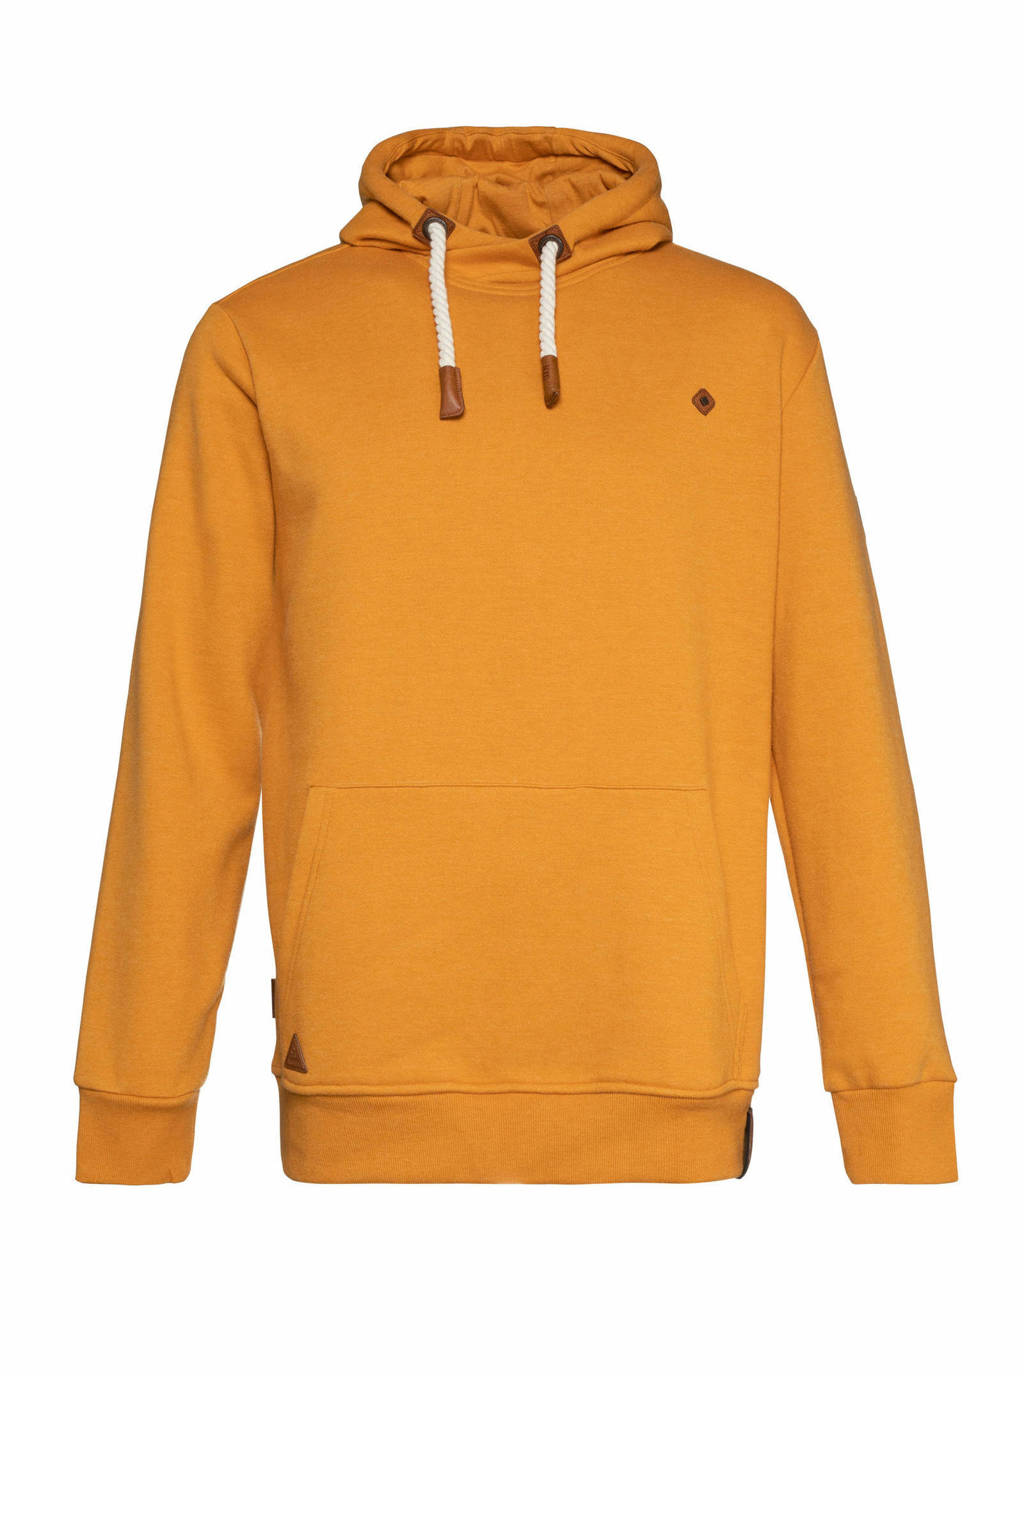 NXG by Protest hoodie Nxg By goud, GOLD YELLOW